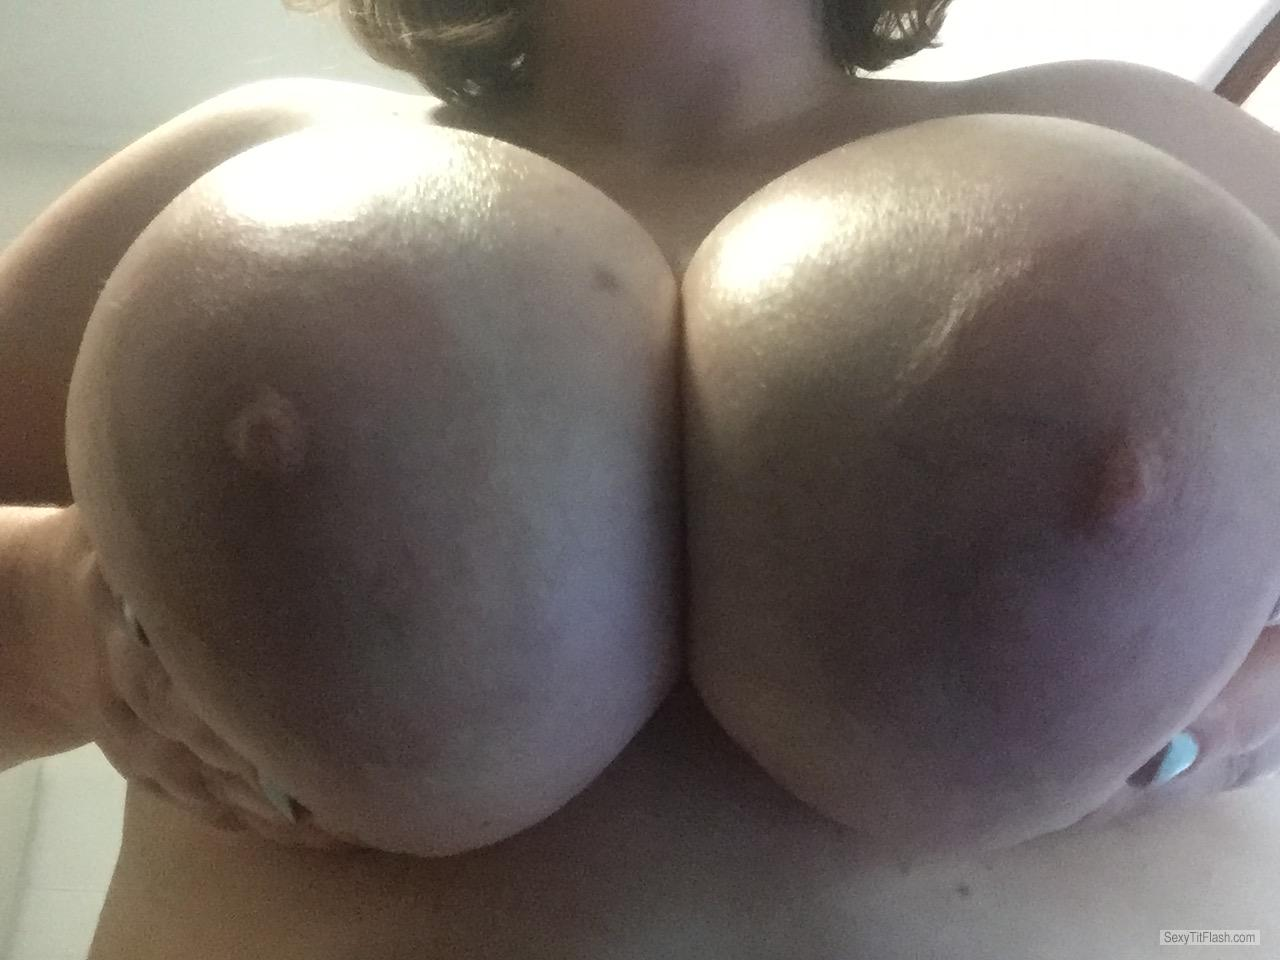 Tit Flash: My Very Big Tits - Topless Juicy_girlxxx from Australia